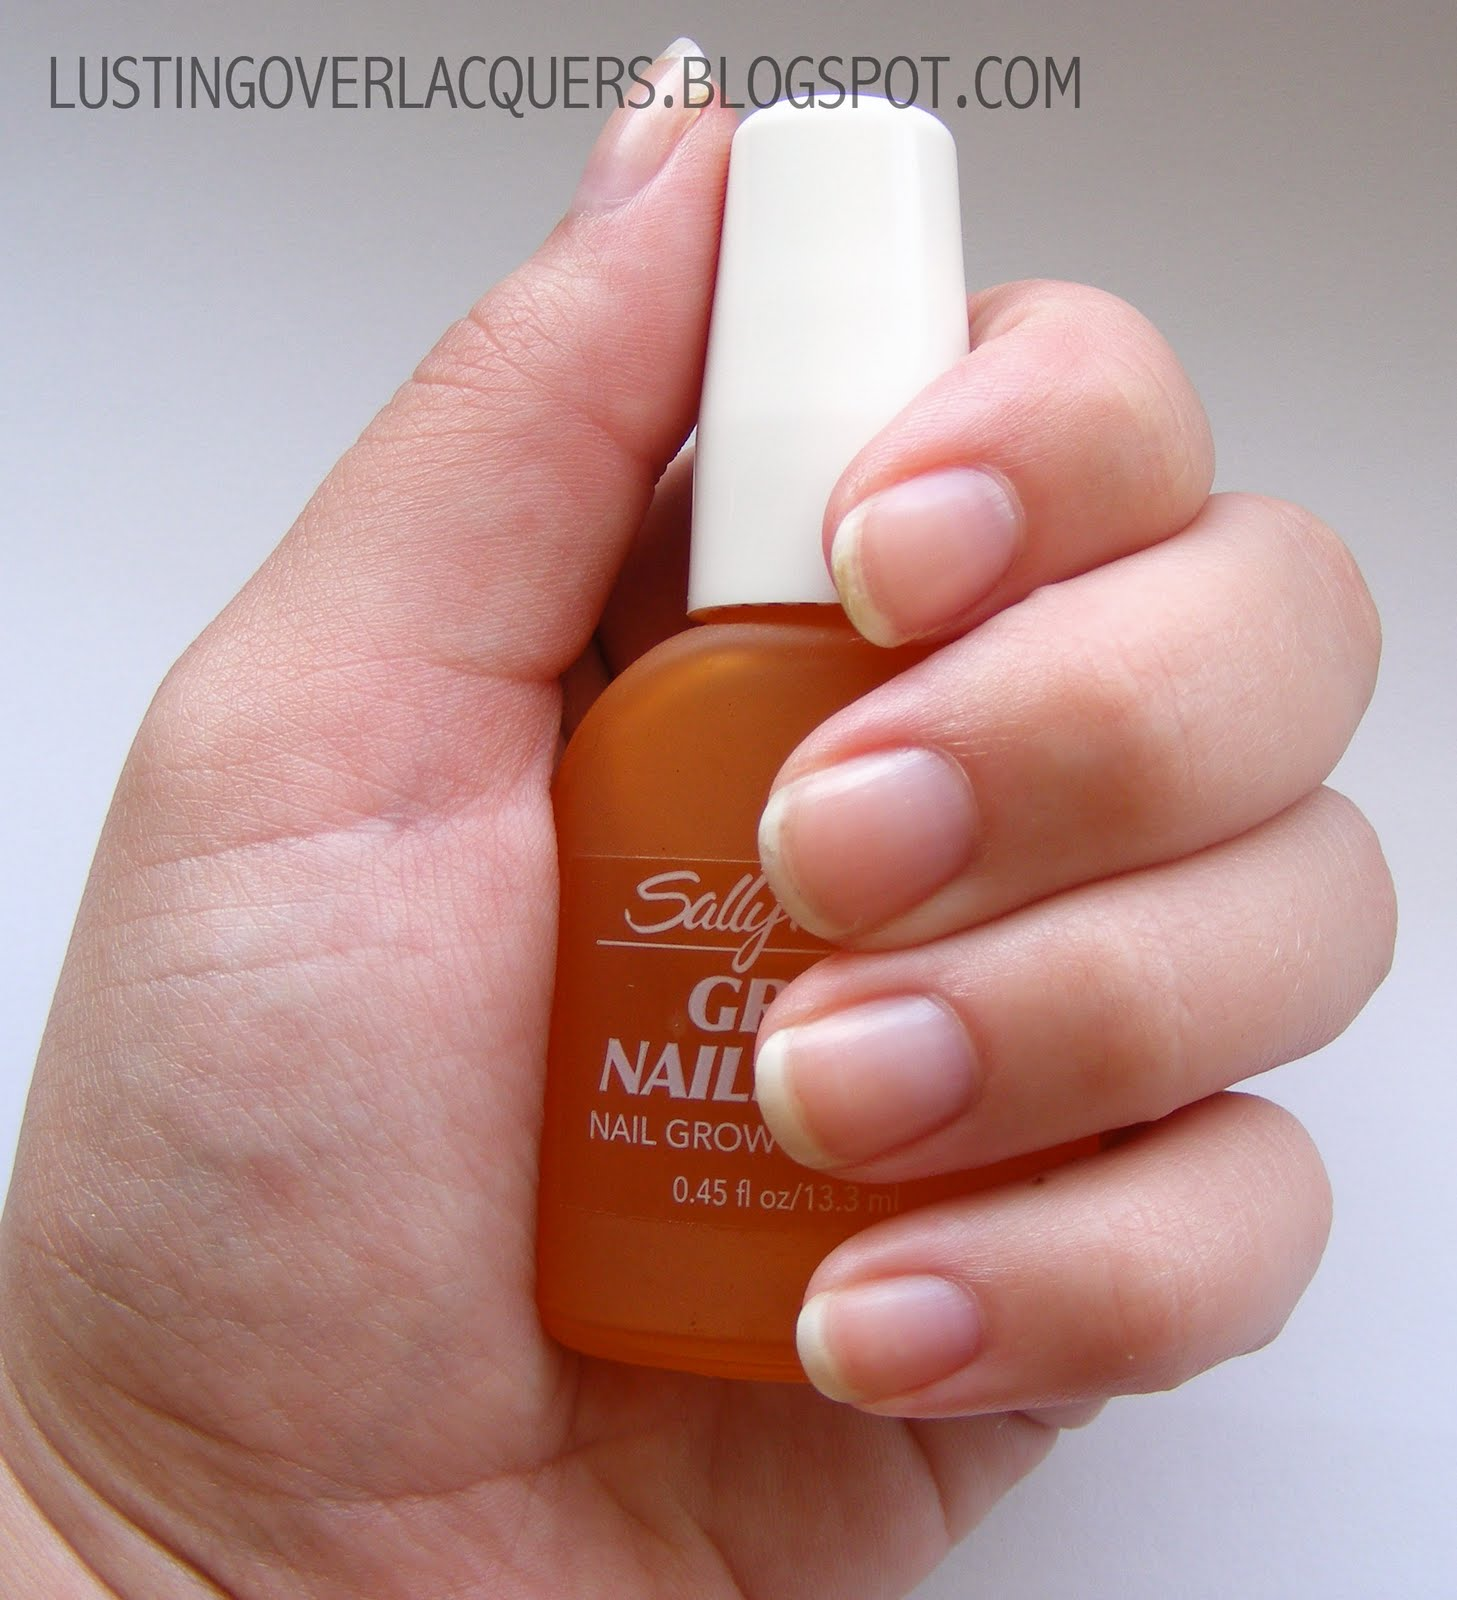 Lusting Over Lacquers: Grow Baby, Grow!